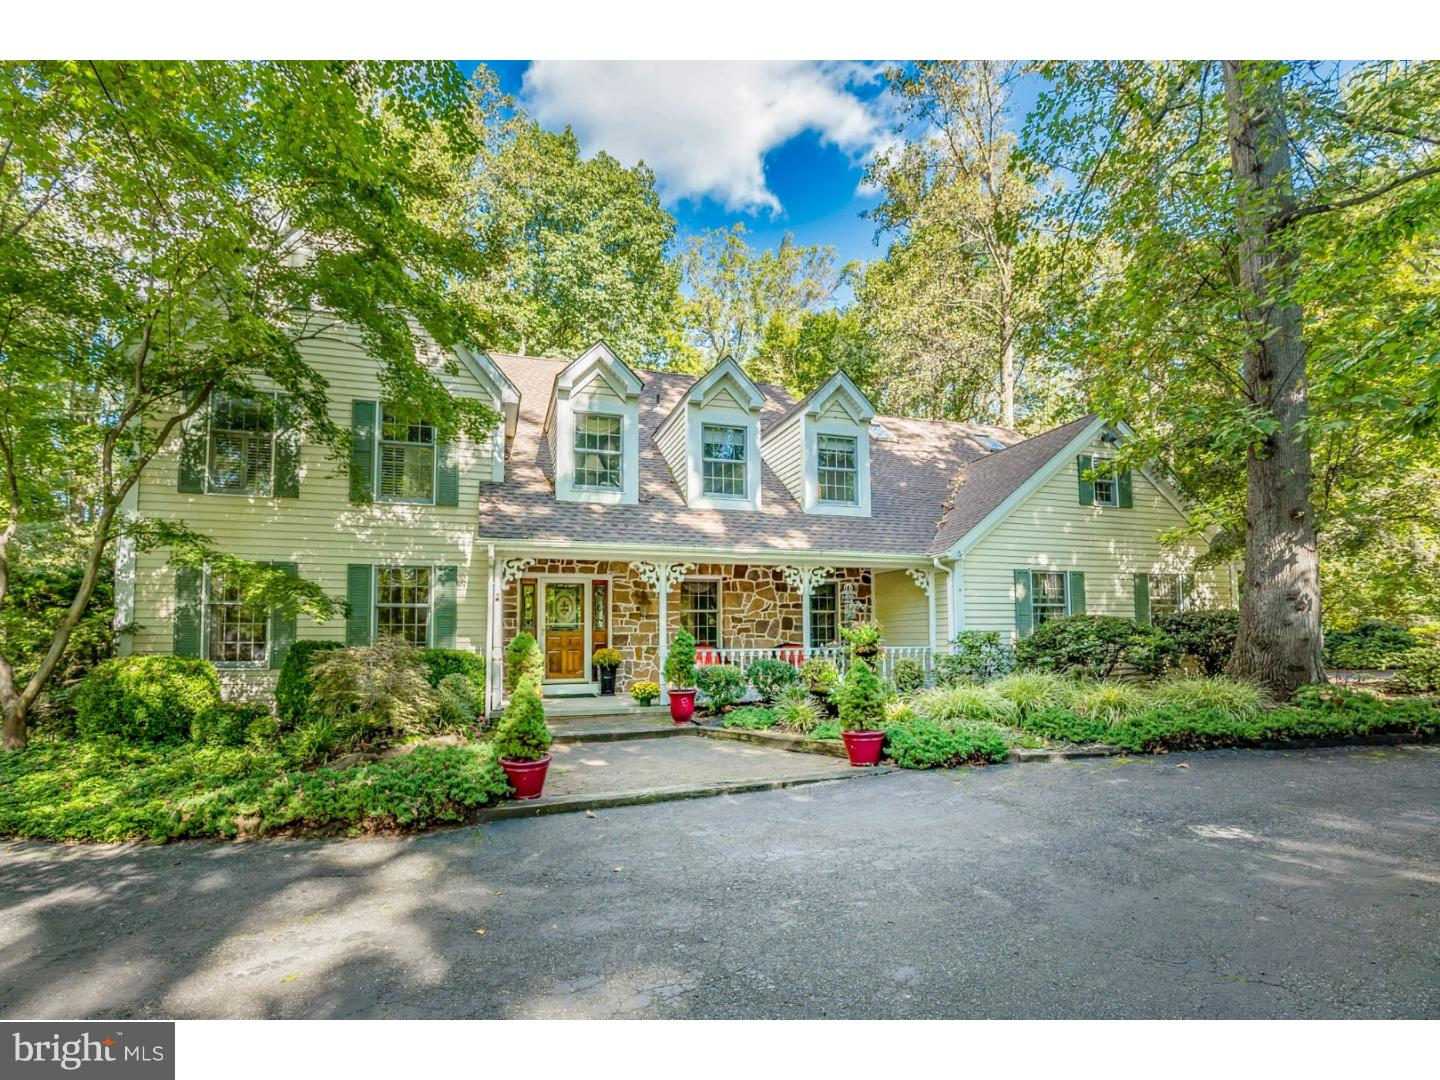 Single Family Home for Sale at 77 WINDING WAY Mickleton, New Jersey 08056 United States